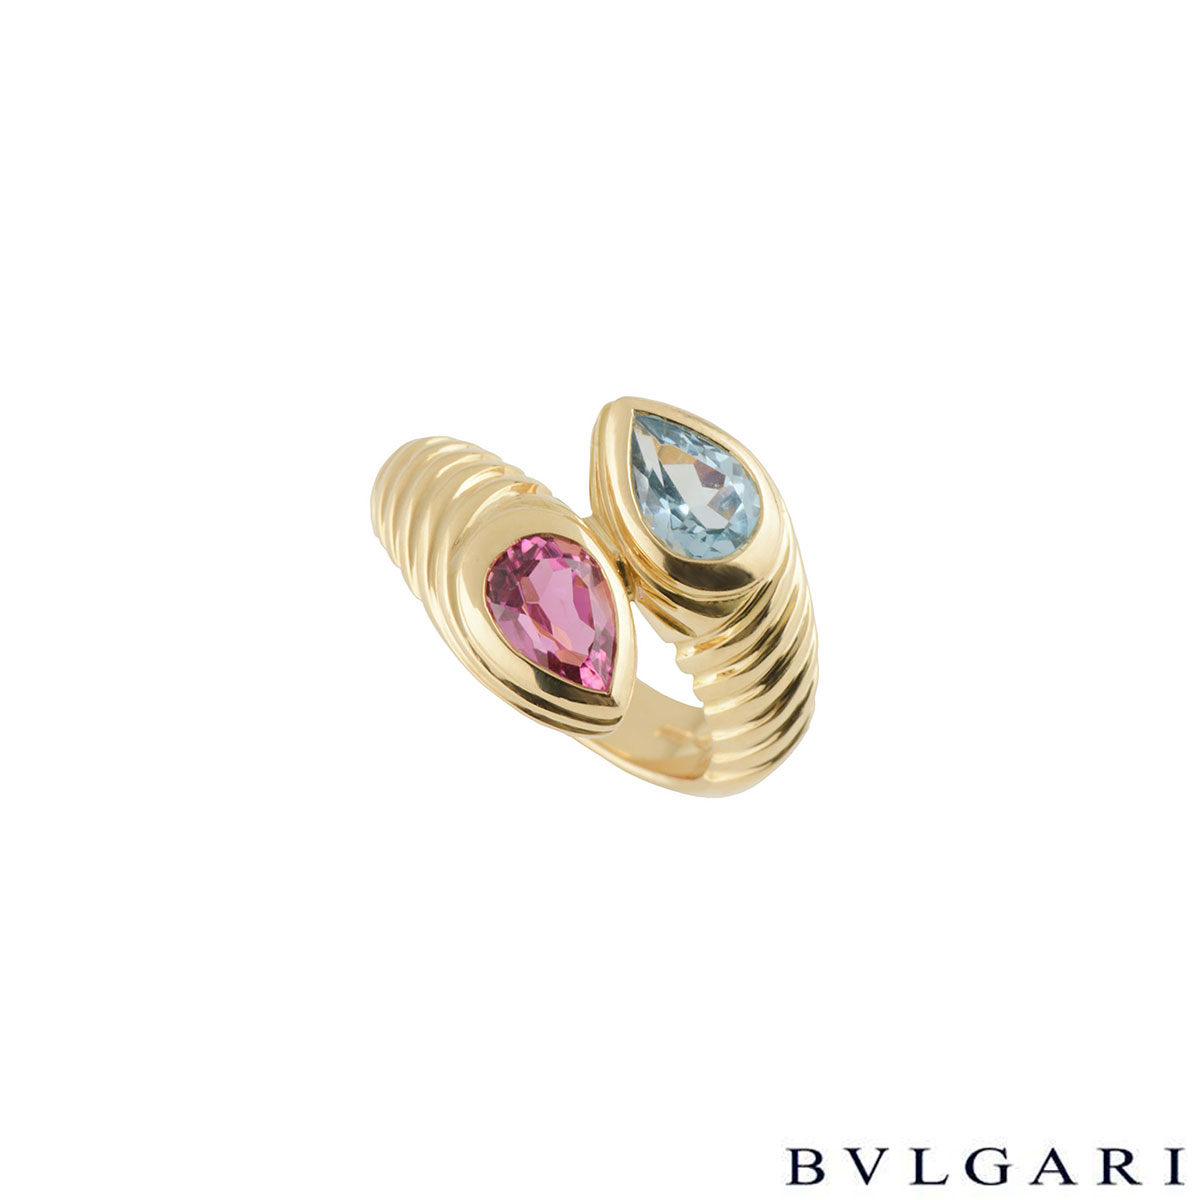 Bvlgari Doppio Tourmaline and Topaz Ring